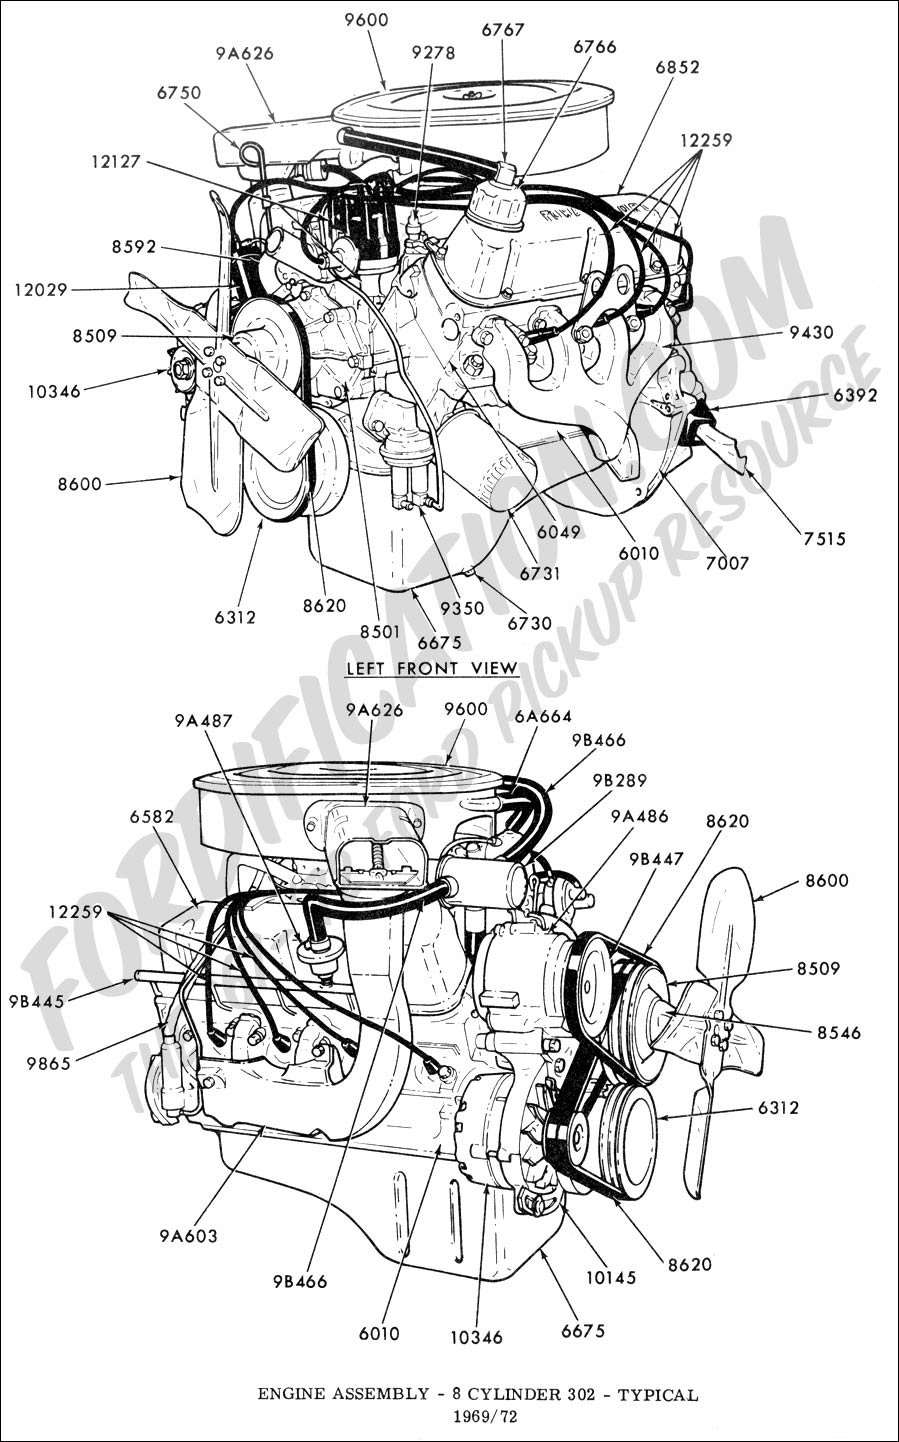 1990 ford 302 engine diagram - wiring diagrams button chip-breed -  chip-breed.lamorciola.it  chip-breed.lamorciola.it